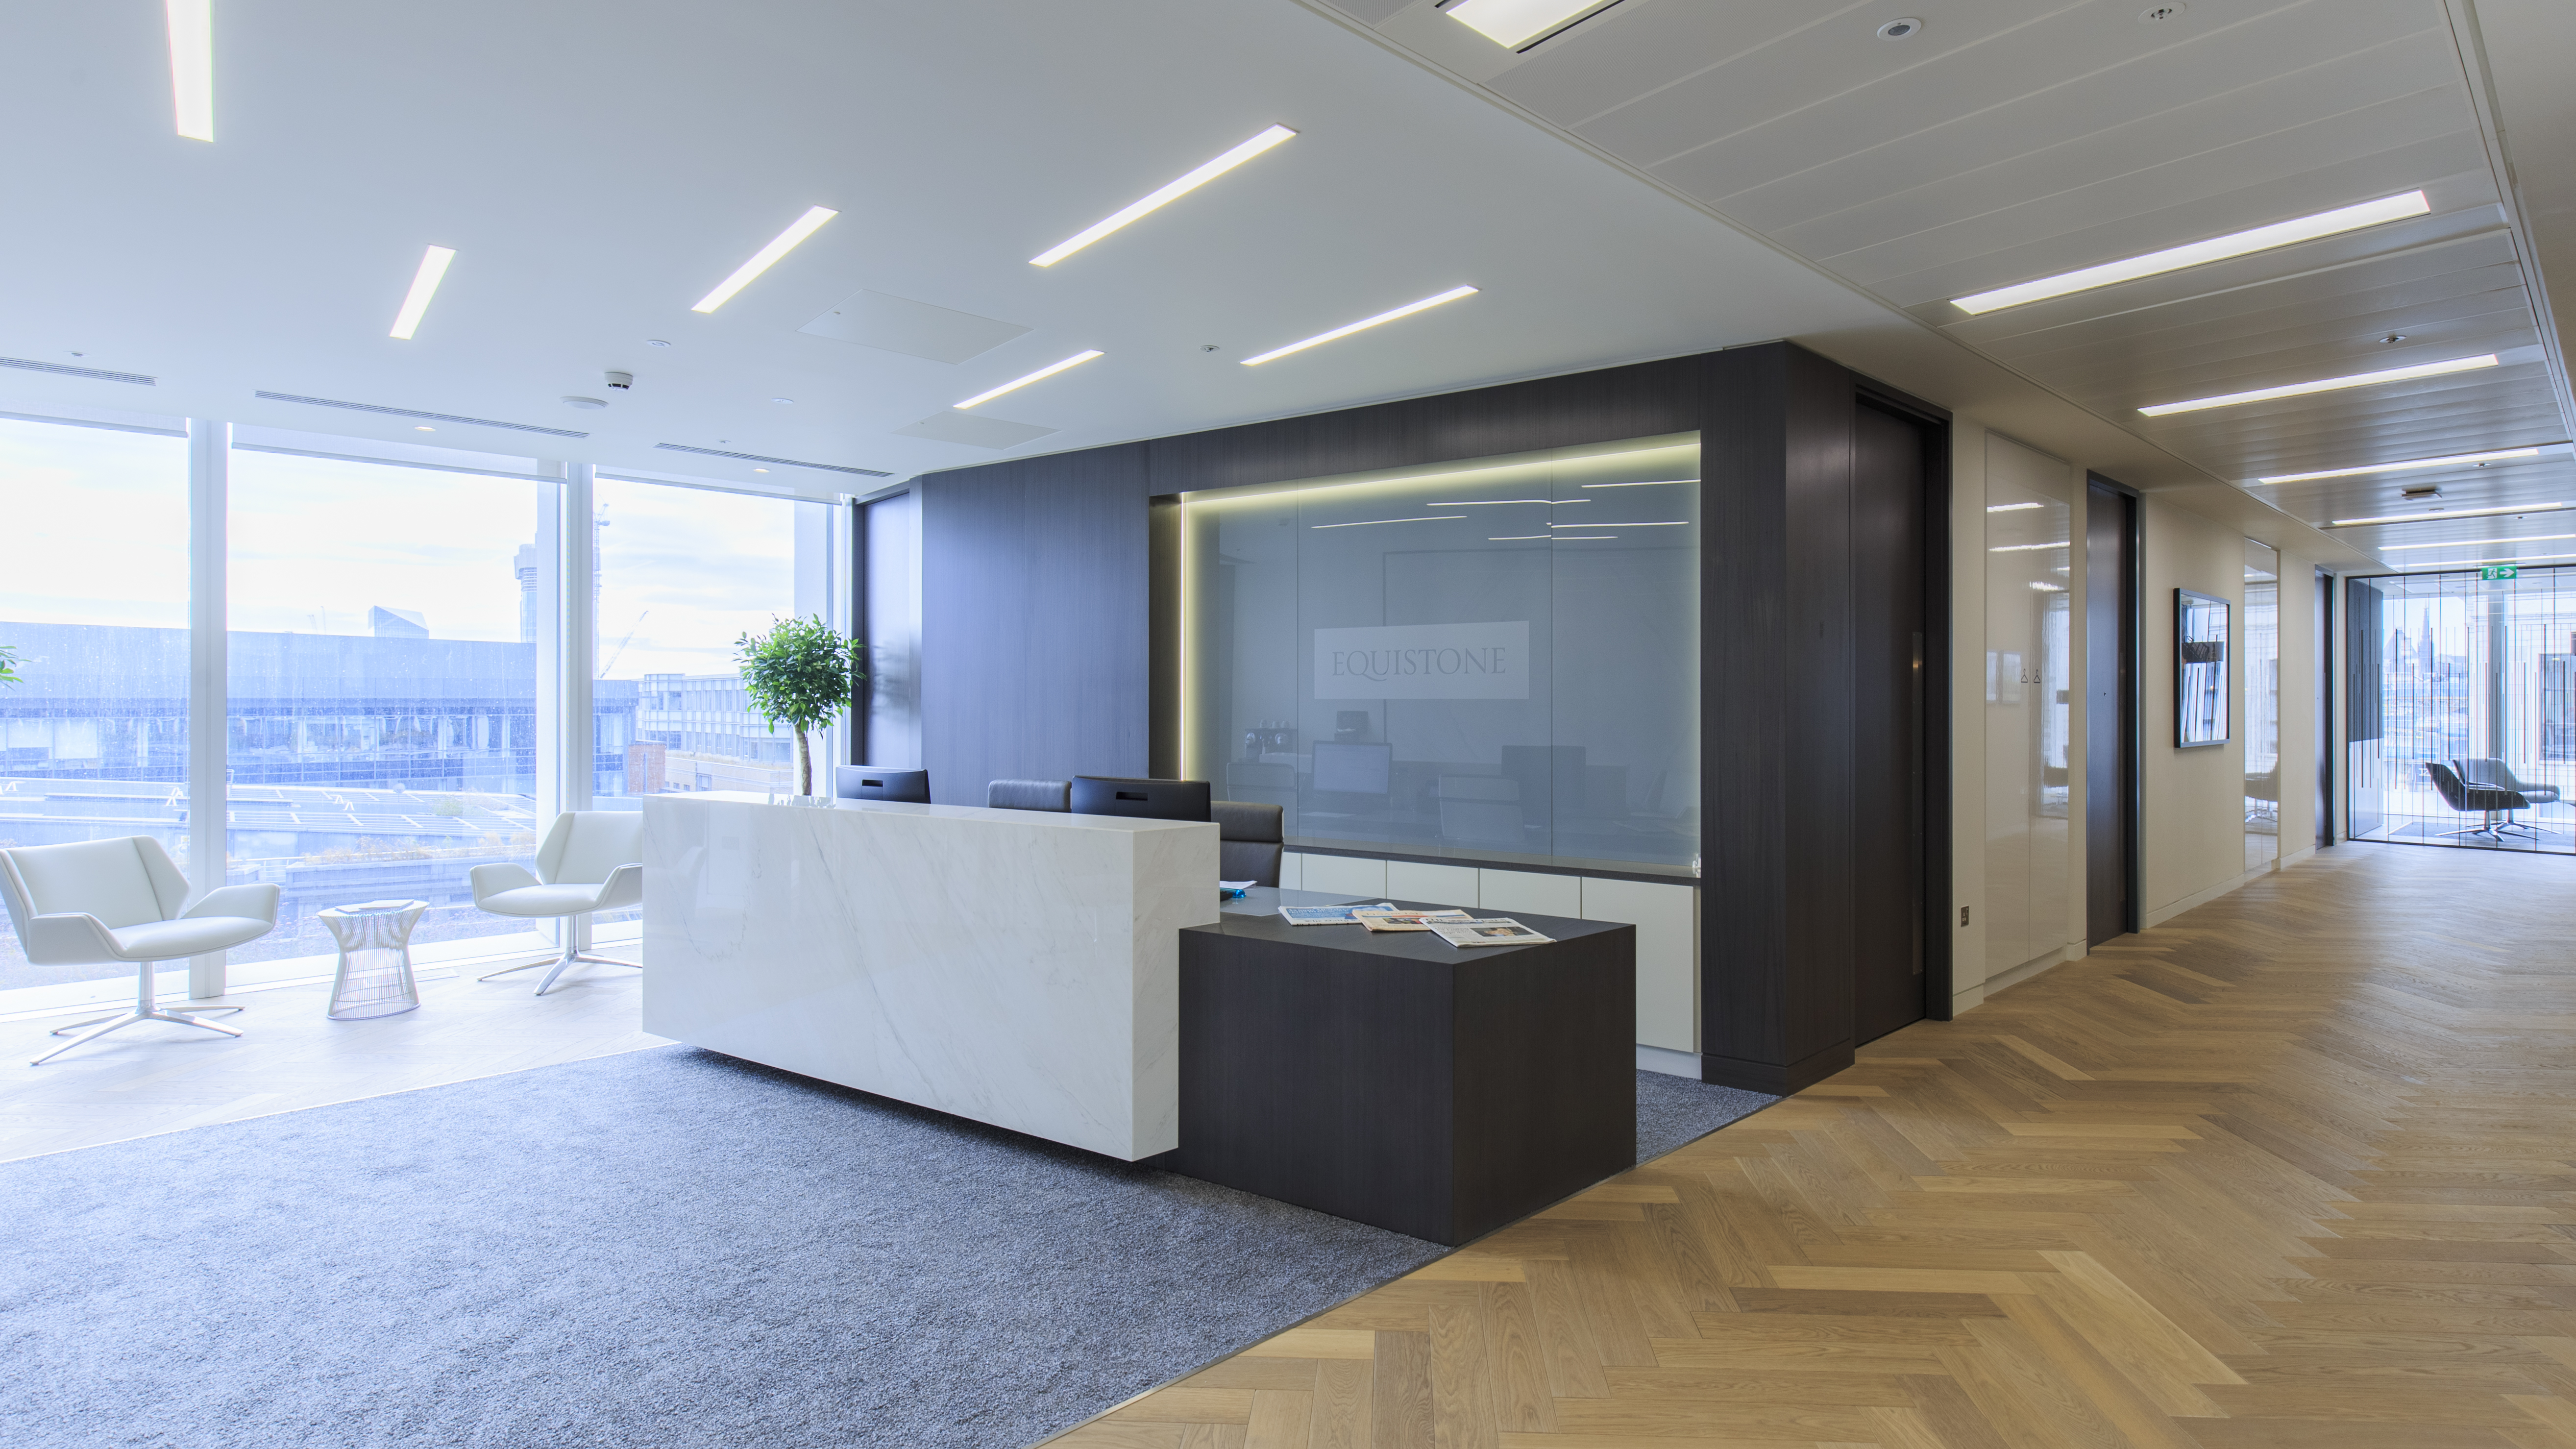 Equistone - Office photos - 28SEP16 (5 of 15)